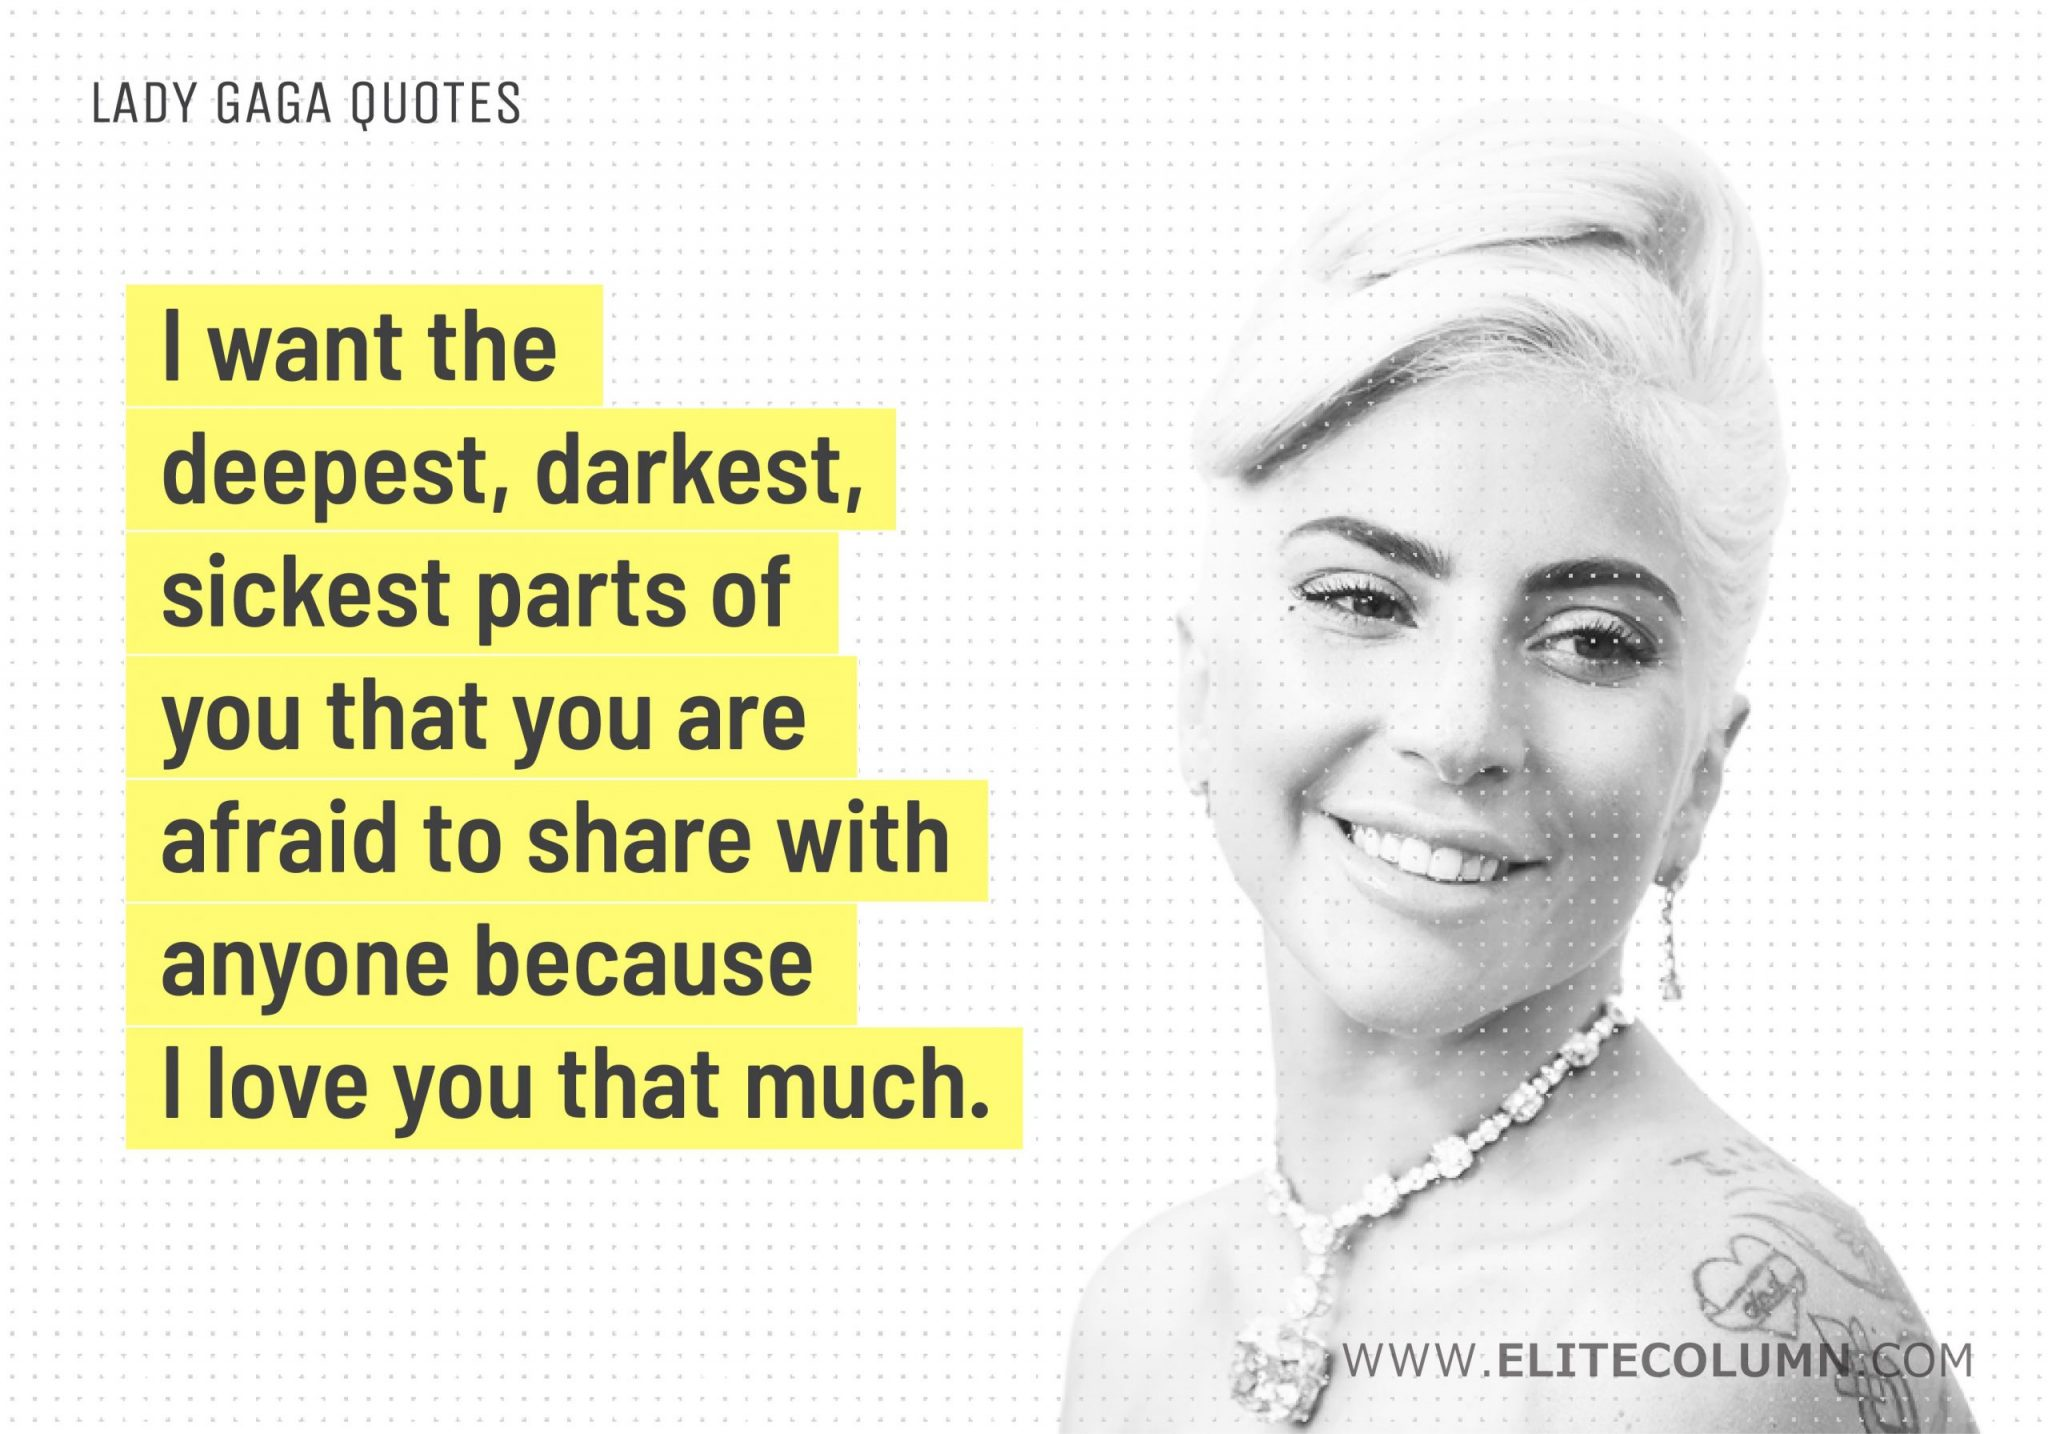 Lady Gaga Quotes (10)